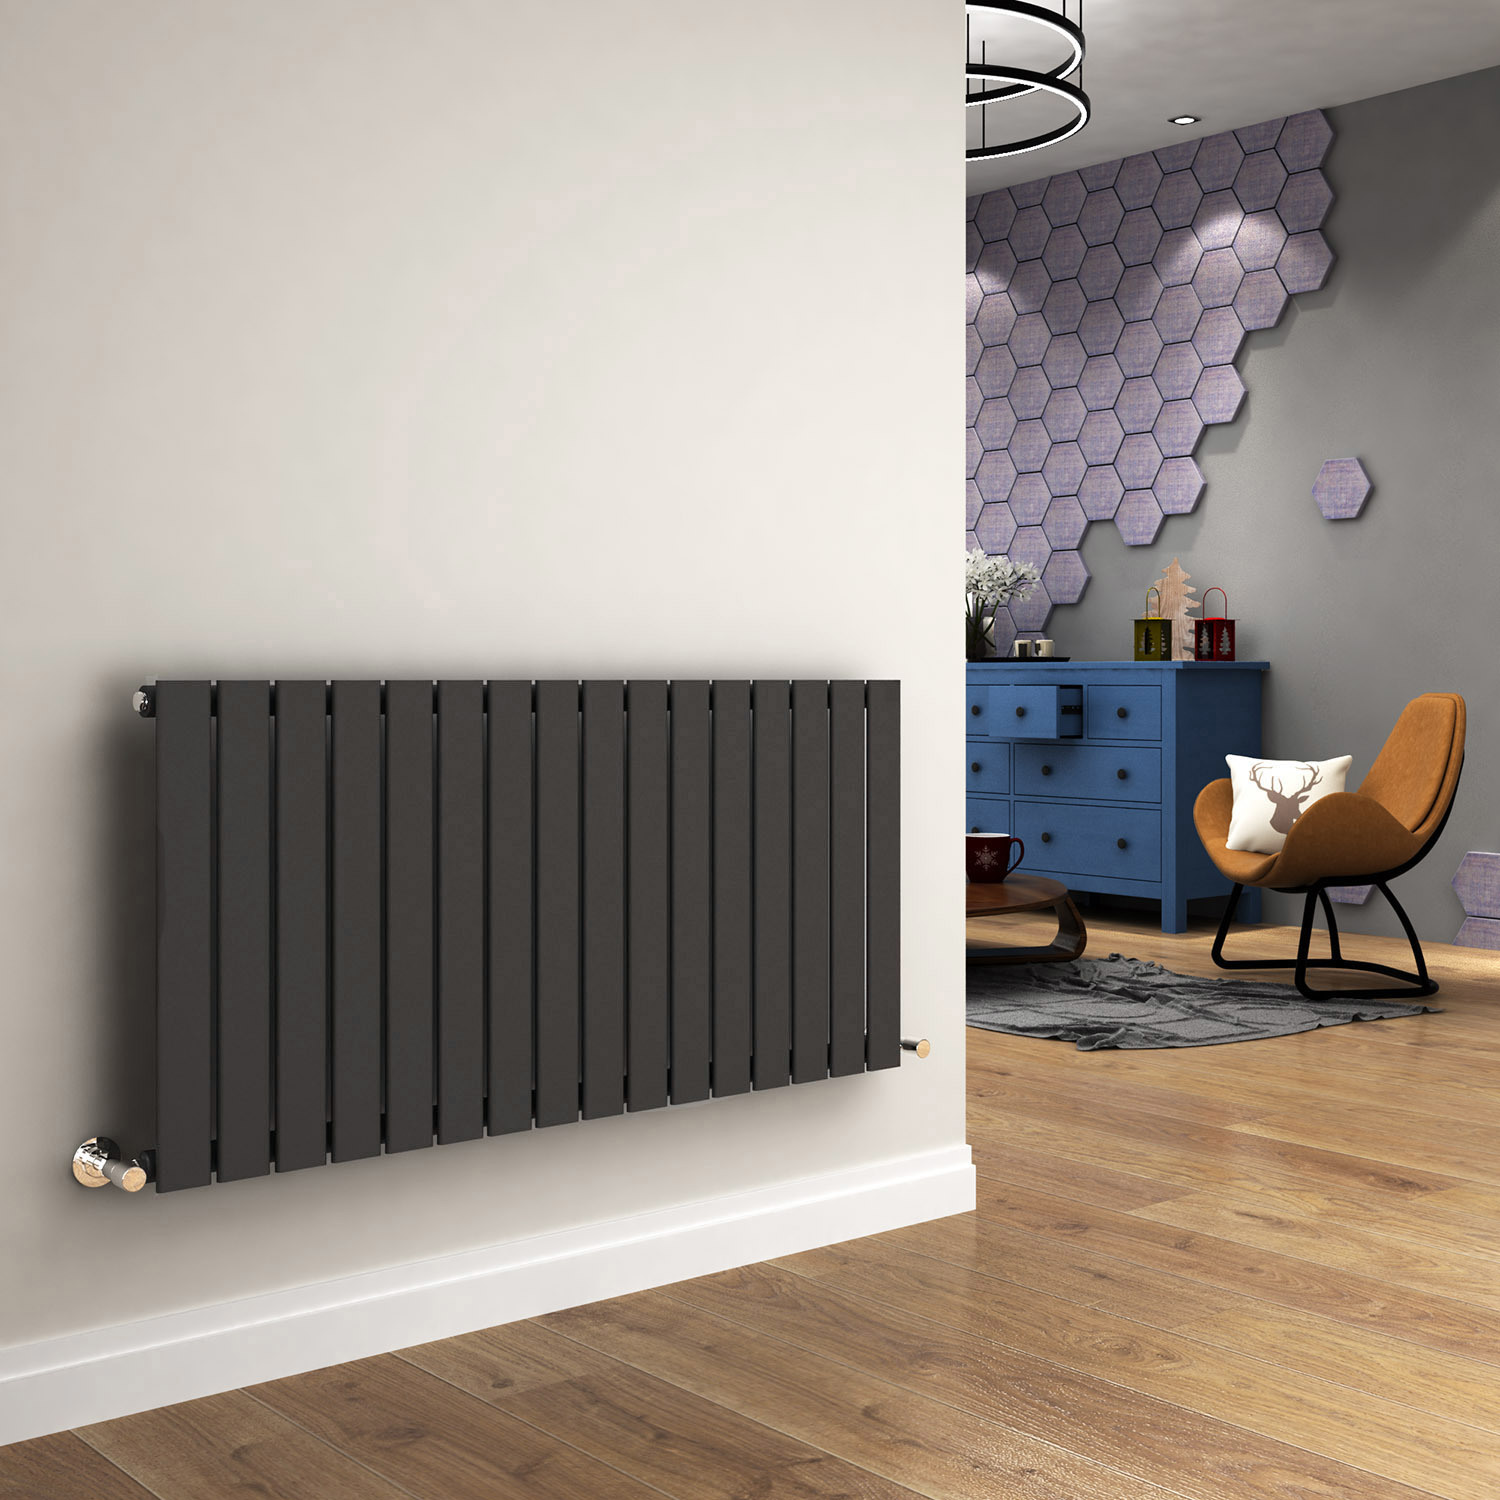 China Sally 600x1300mm Luxury Design Matt Black Horizontal Heating Radiator With Single Flat Panel For Home Bathroom Bedroom Kitchen Living Room China Radiator Heated Towel Rail